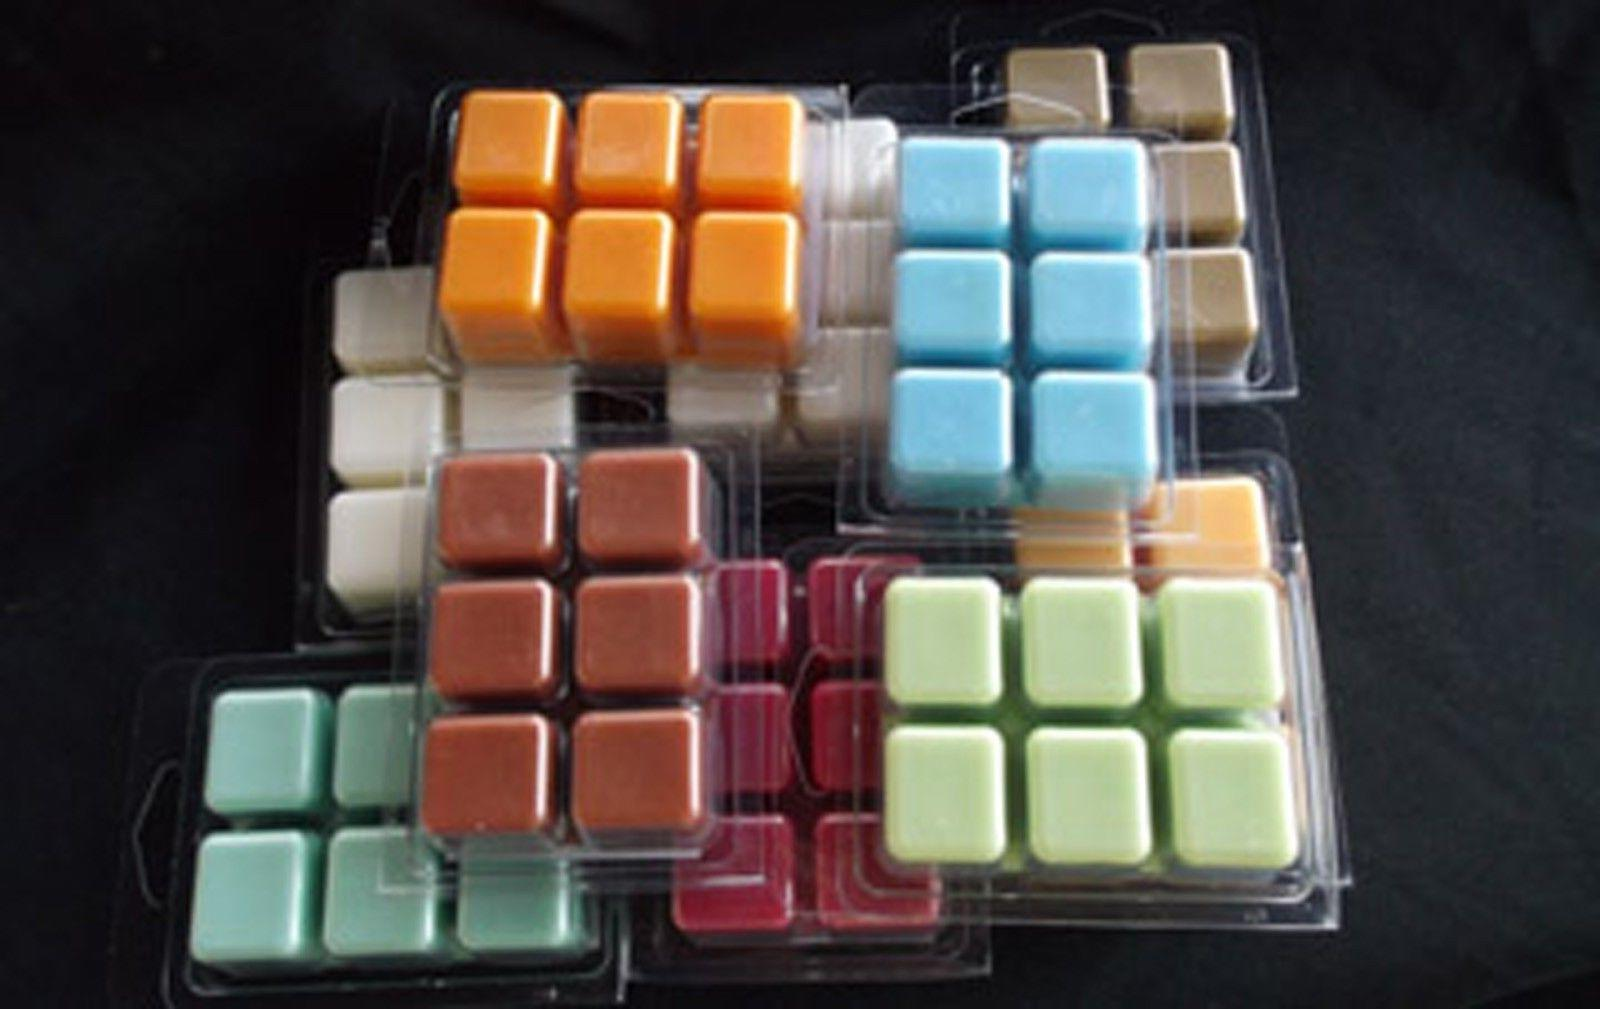 Heavily Scented Soy-Based Tart Melts pks of 6 cubes